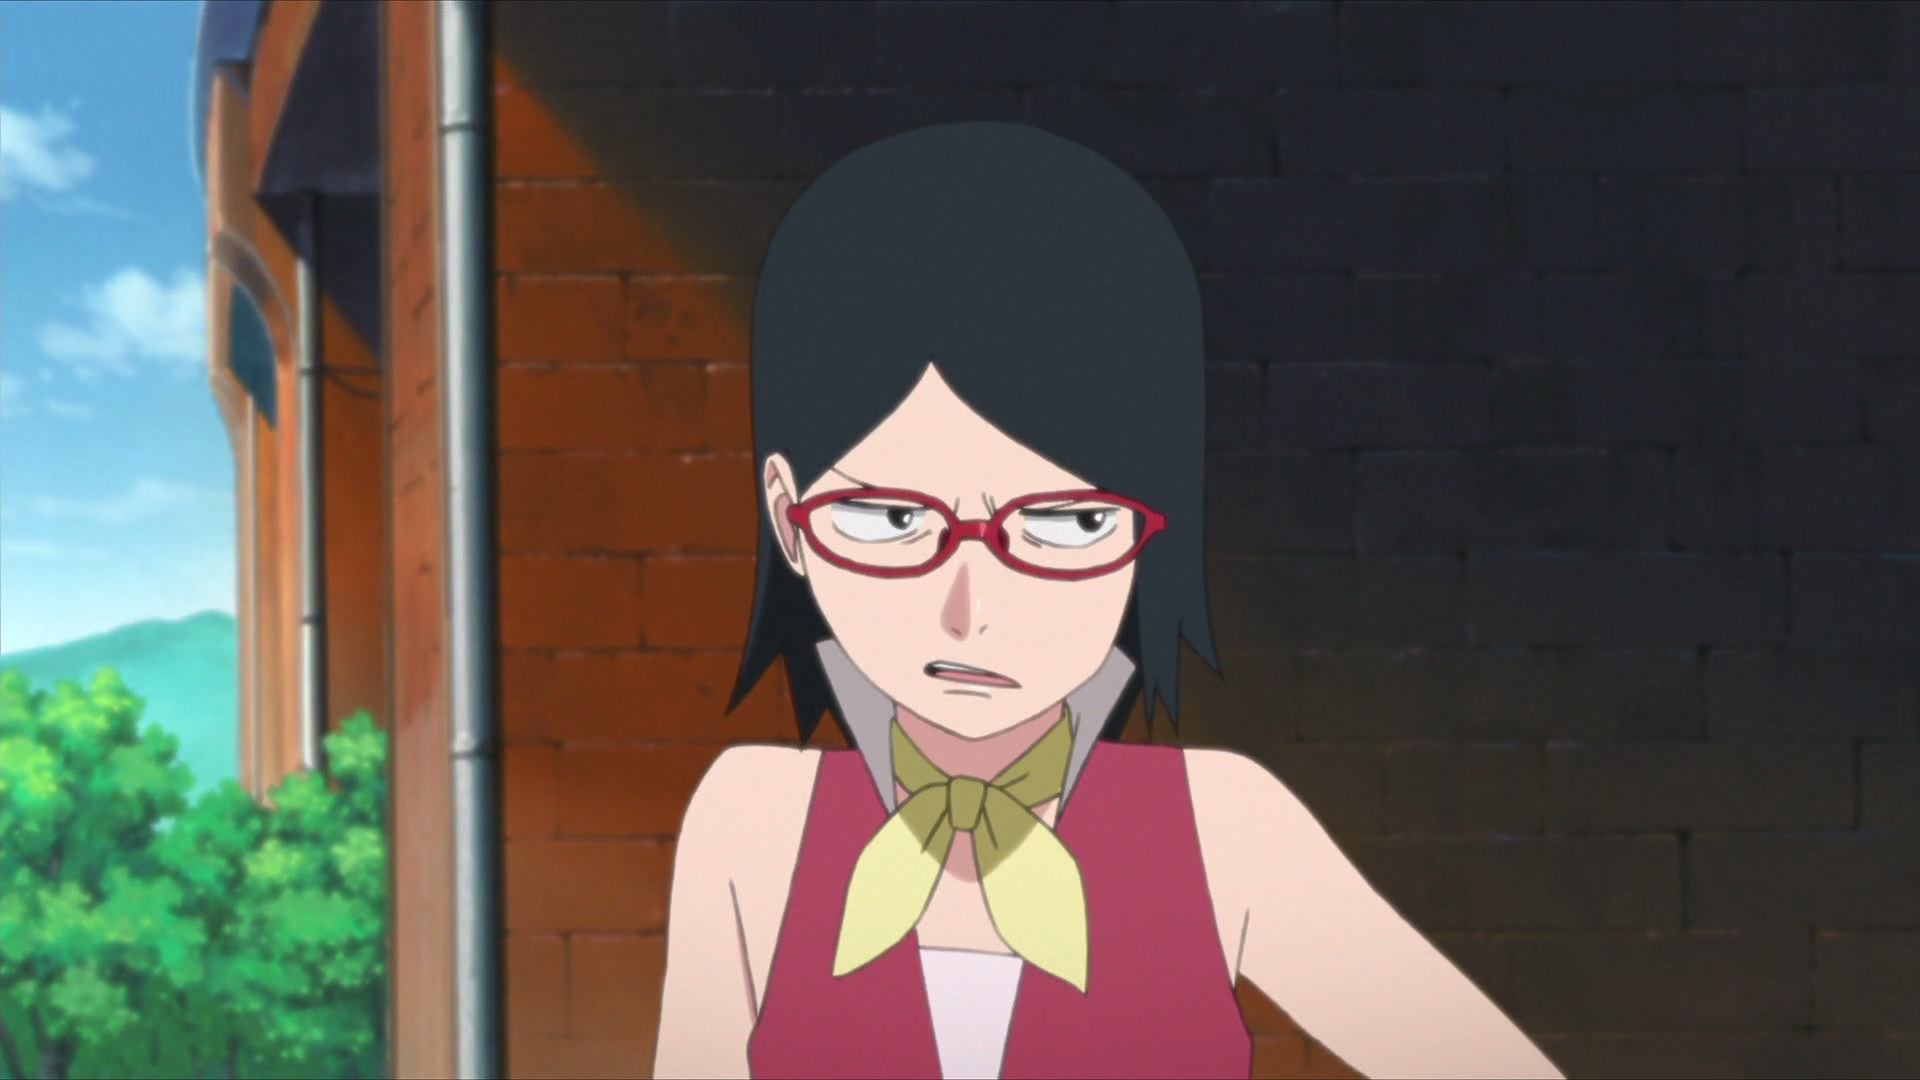 sarada and boruto relationship